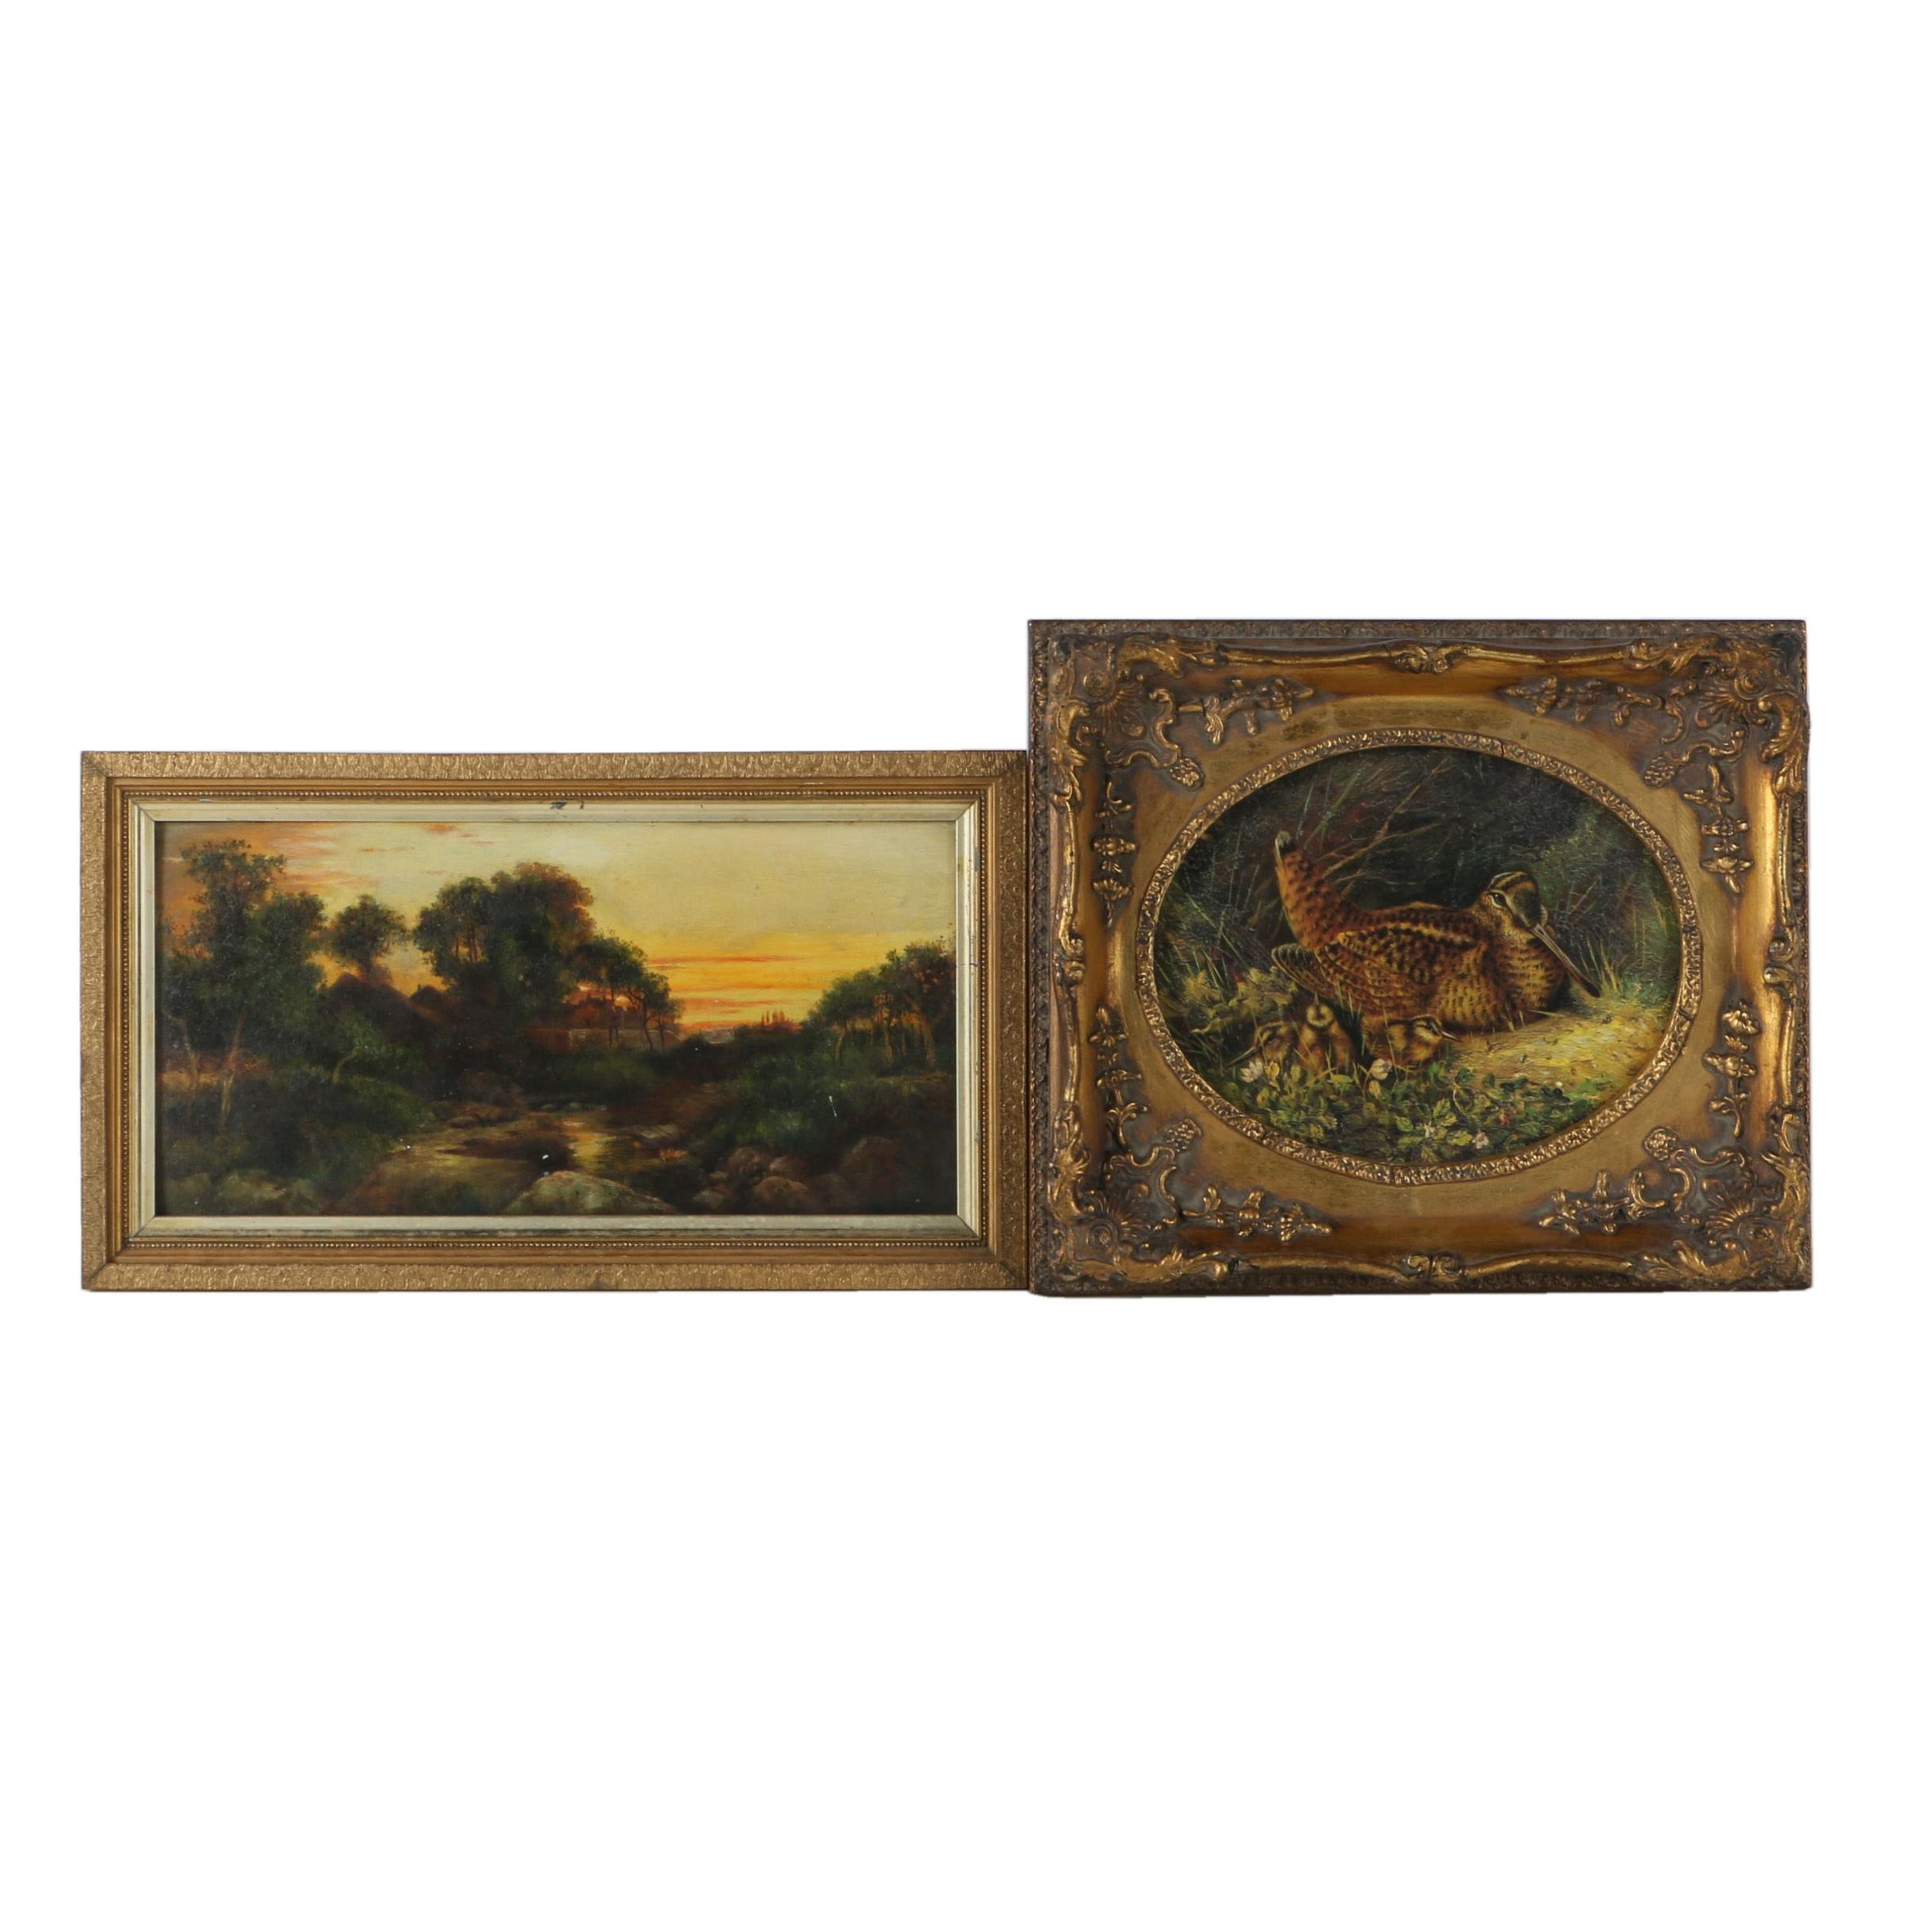 Oil Painting on Panel of Landscape with Offset Lithograph of Birds